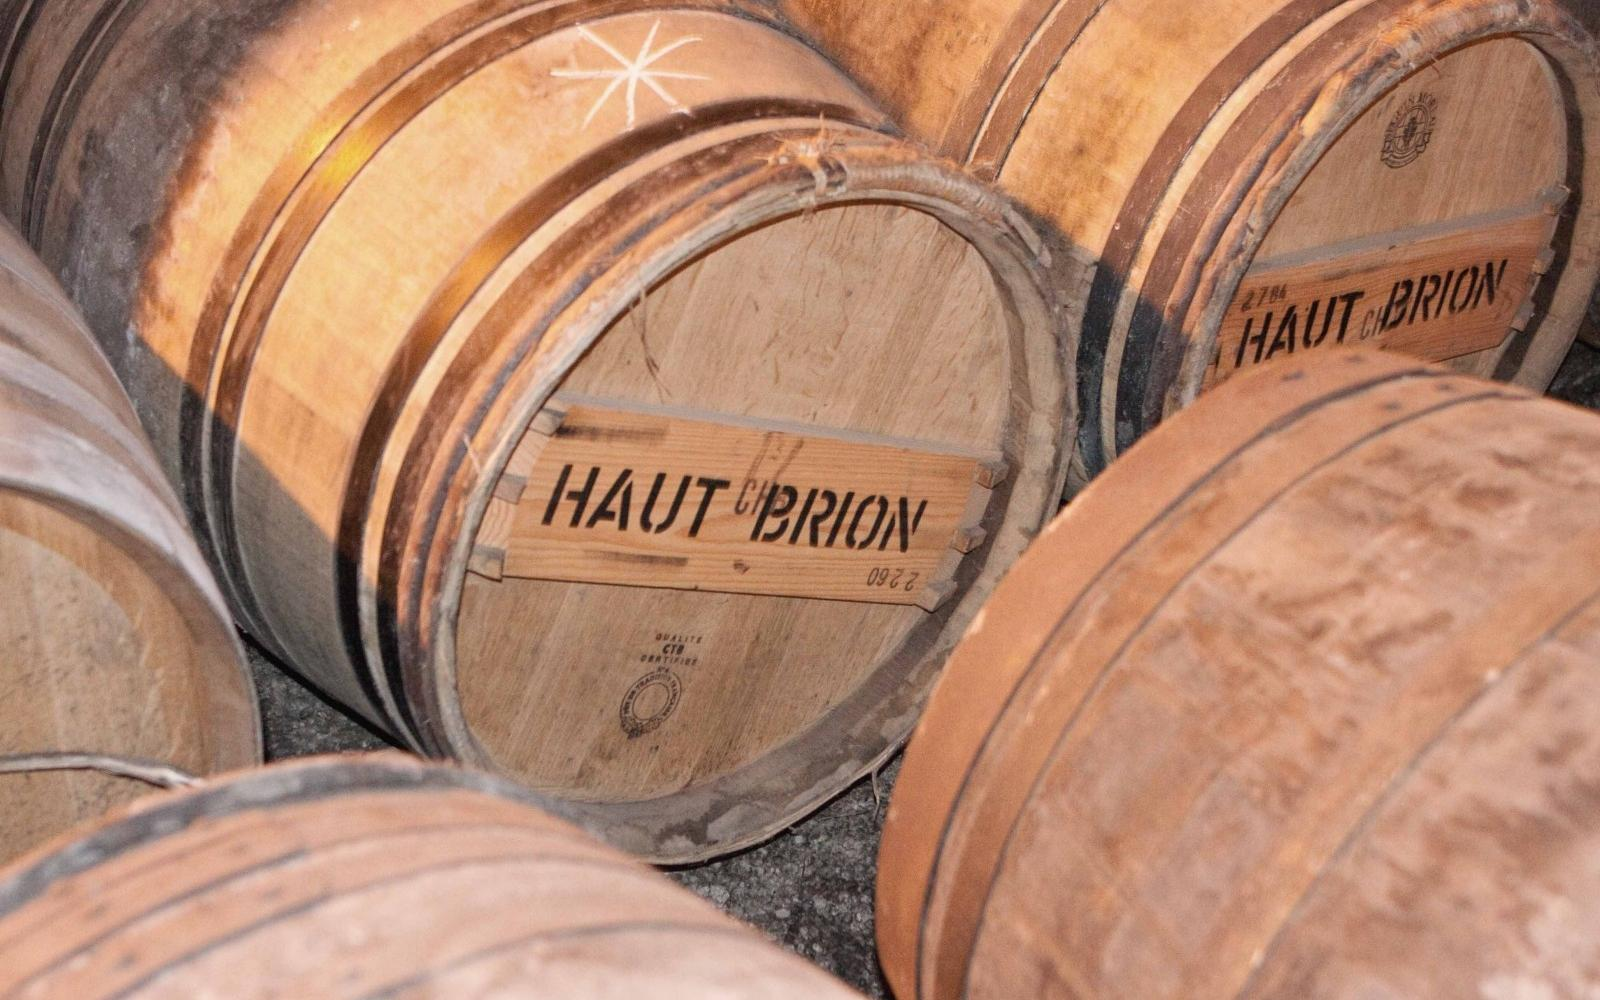 Bruichladdich being finished in Haut Brion wine casks - Photo: Flickr/ Michael McKechnie